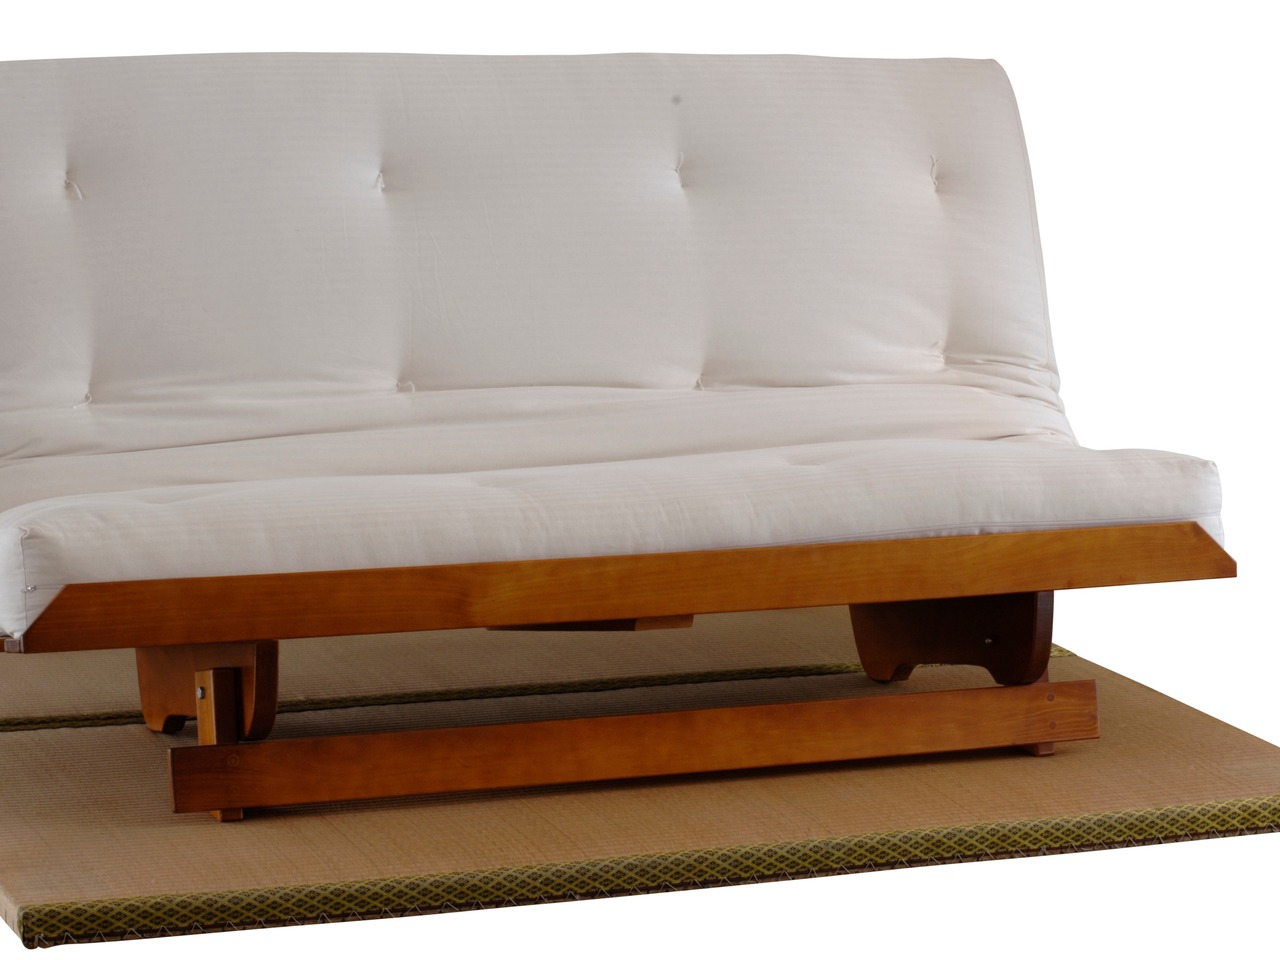 Sofa Brisbane Zen Beds And Sofas By Dan Walker Bespoke Woodworker Handkrafted